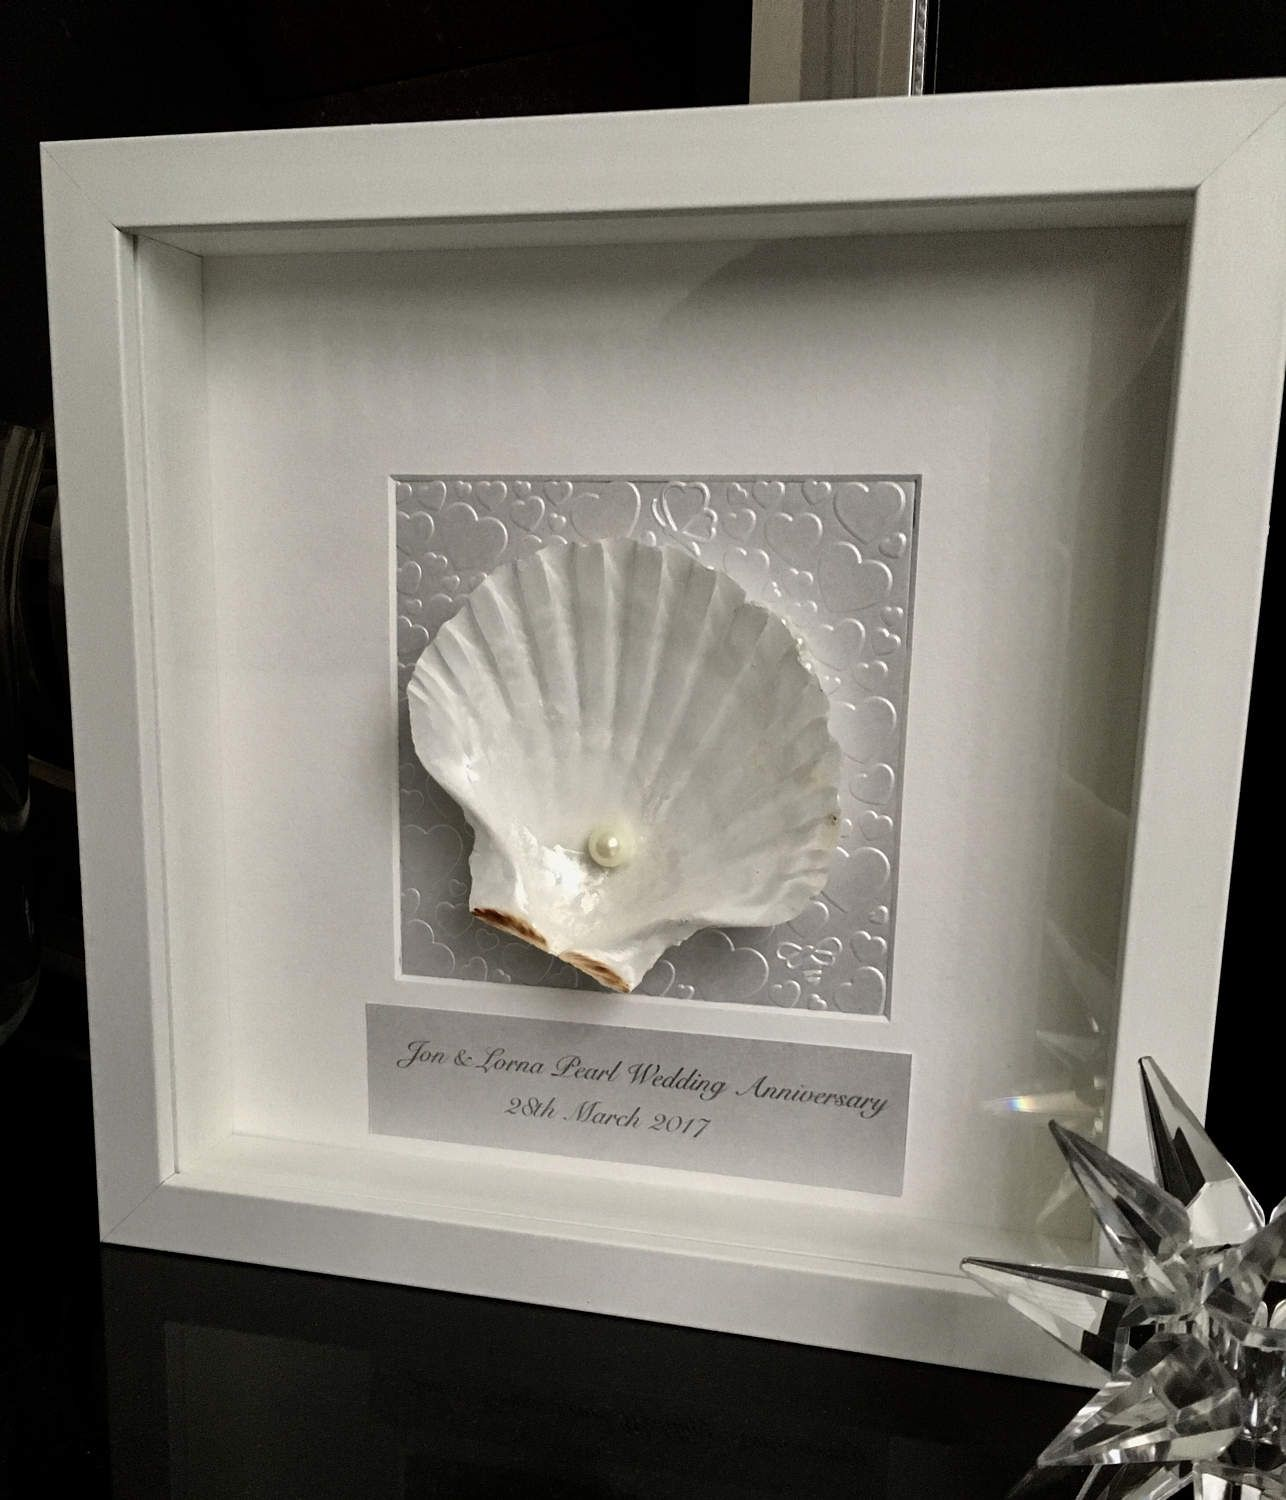 Parents 30th Wedding Anniversary Gifts: 30th Wedding Anniversary Gift, Shell Art Anniversary Gift